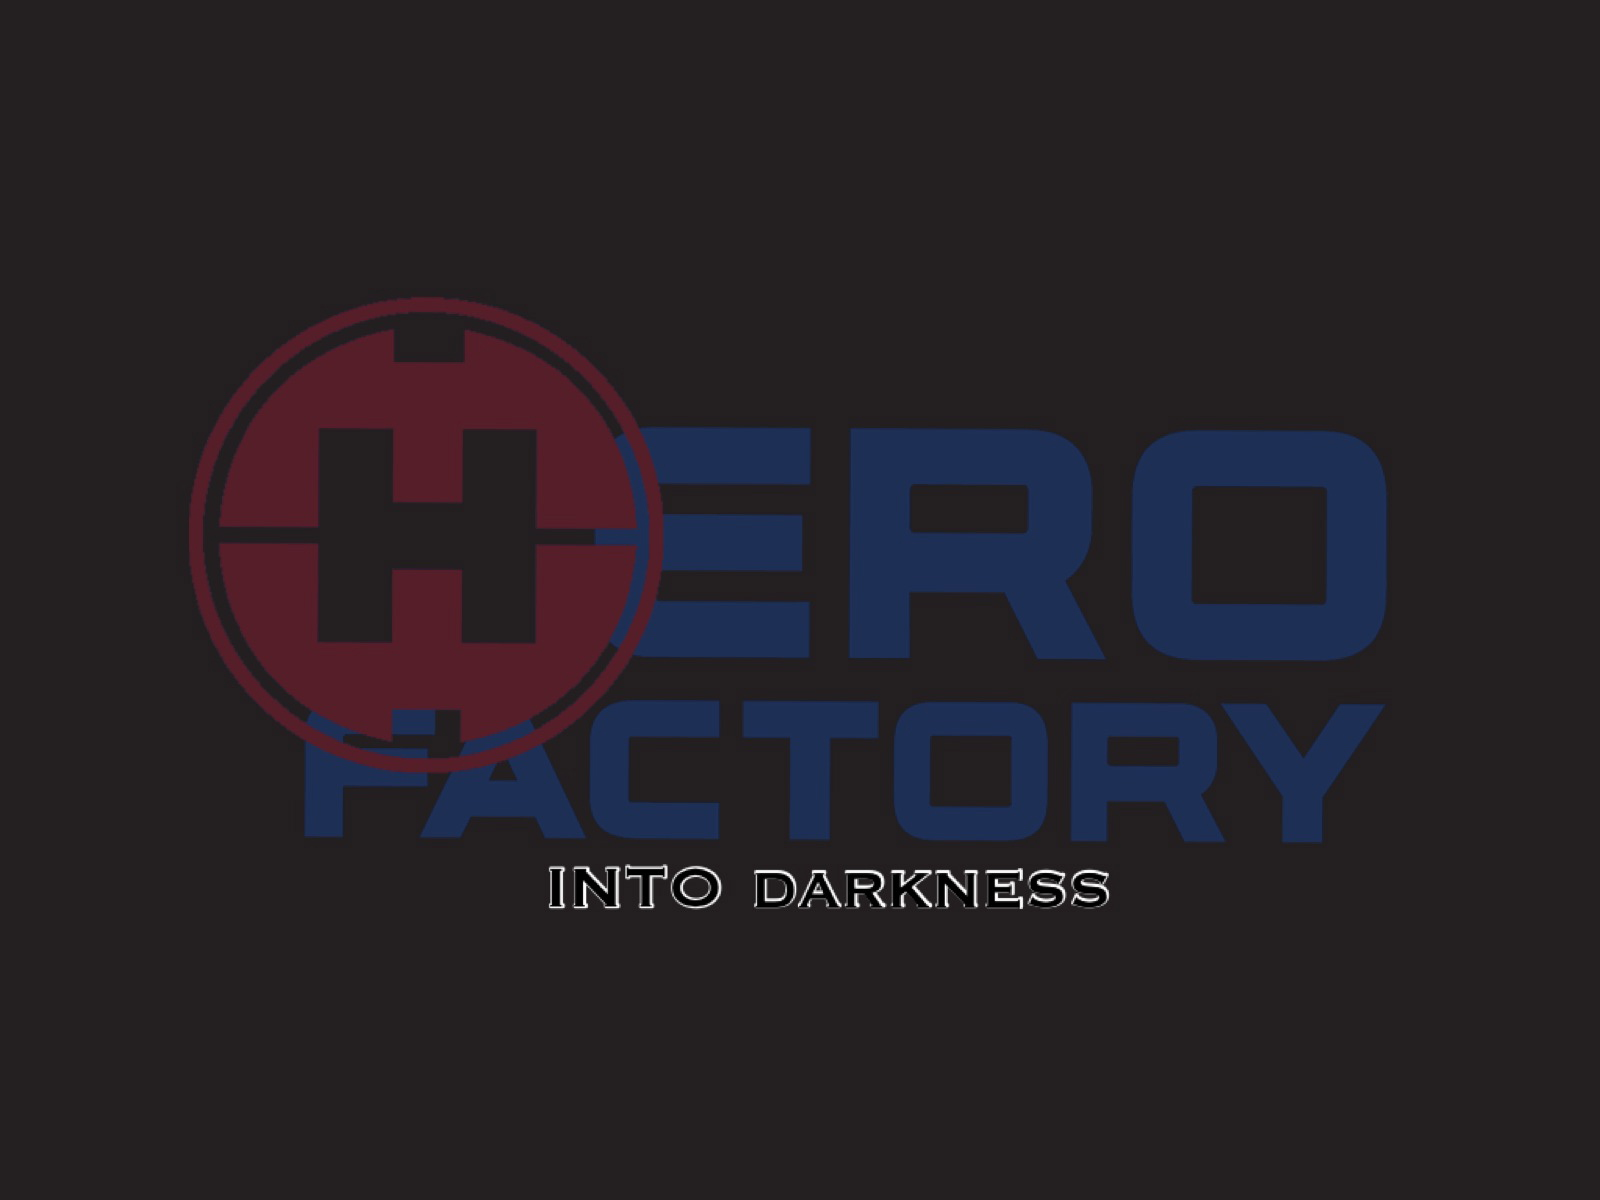 Hero Factory: Into Darkness